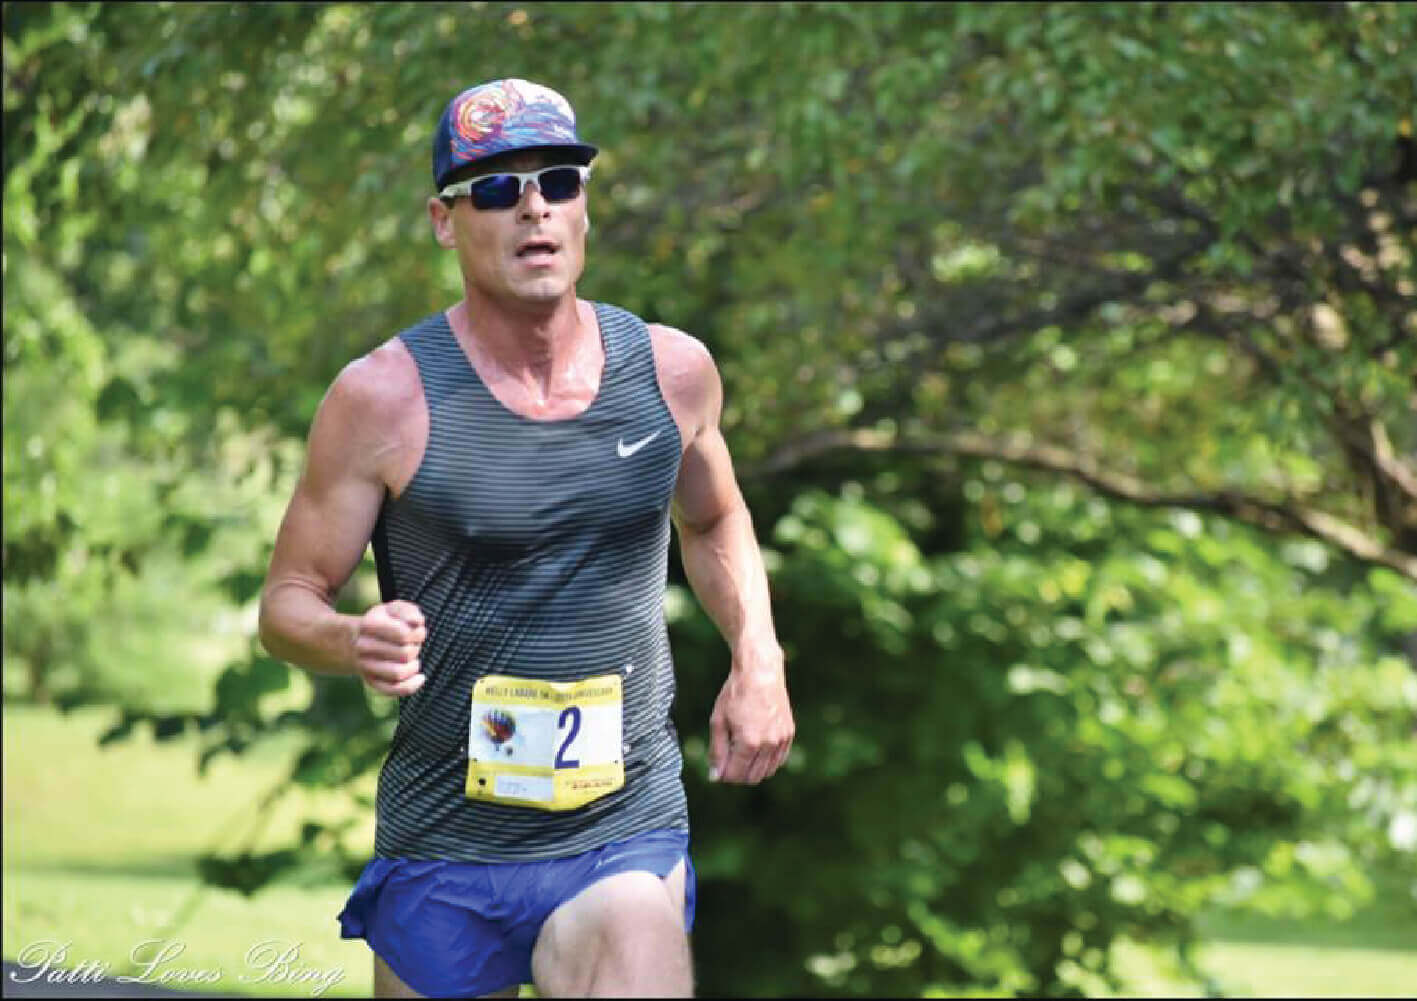 Spenco​ ​brand​ ​ambassador,​ ​Michael​ ​Kent​ ​running​ ​mid-race​ ​in​ ​a​ ​city